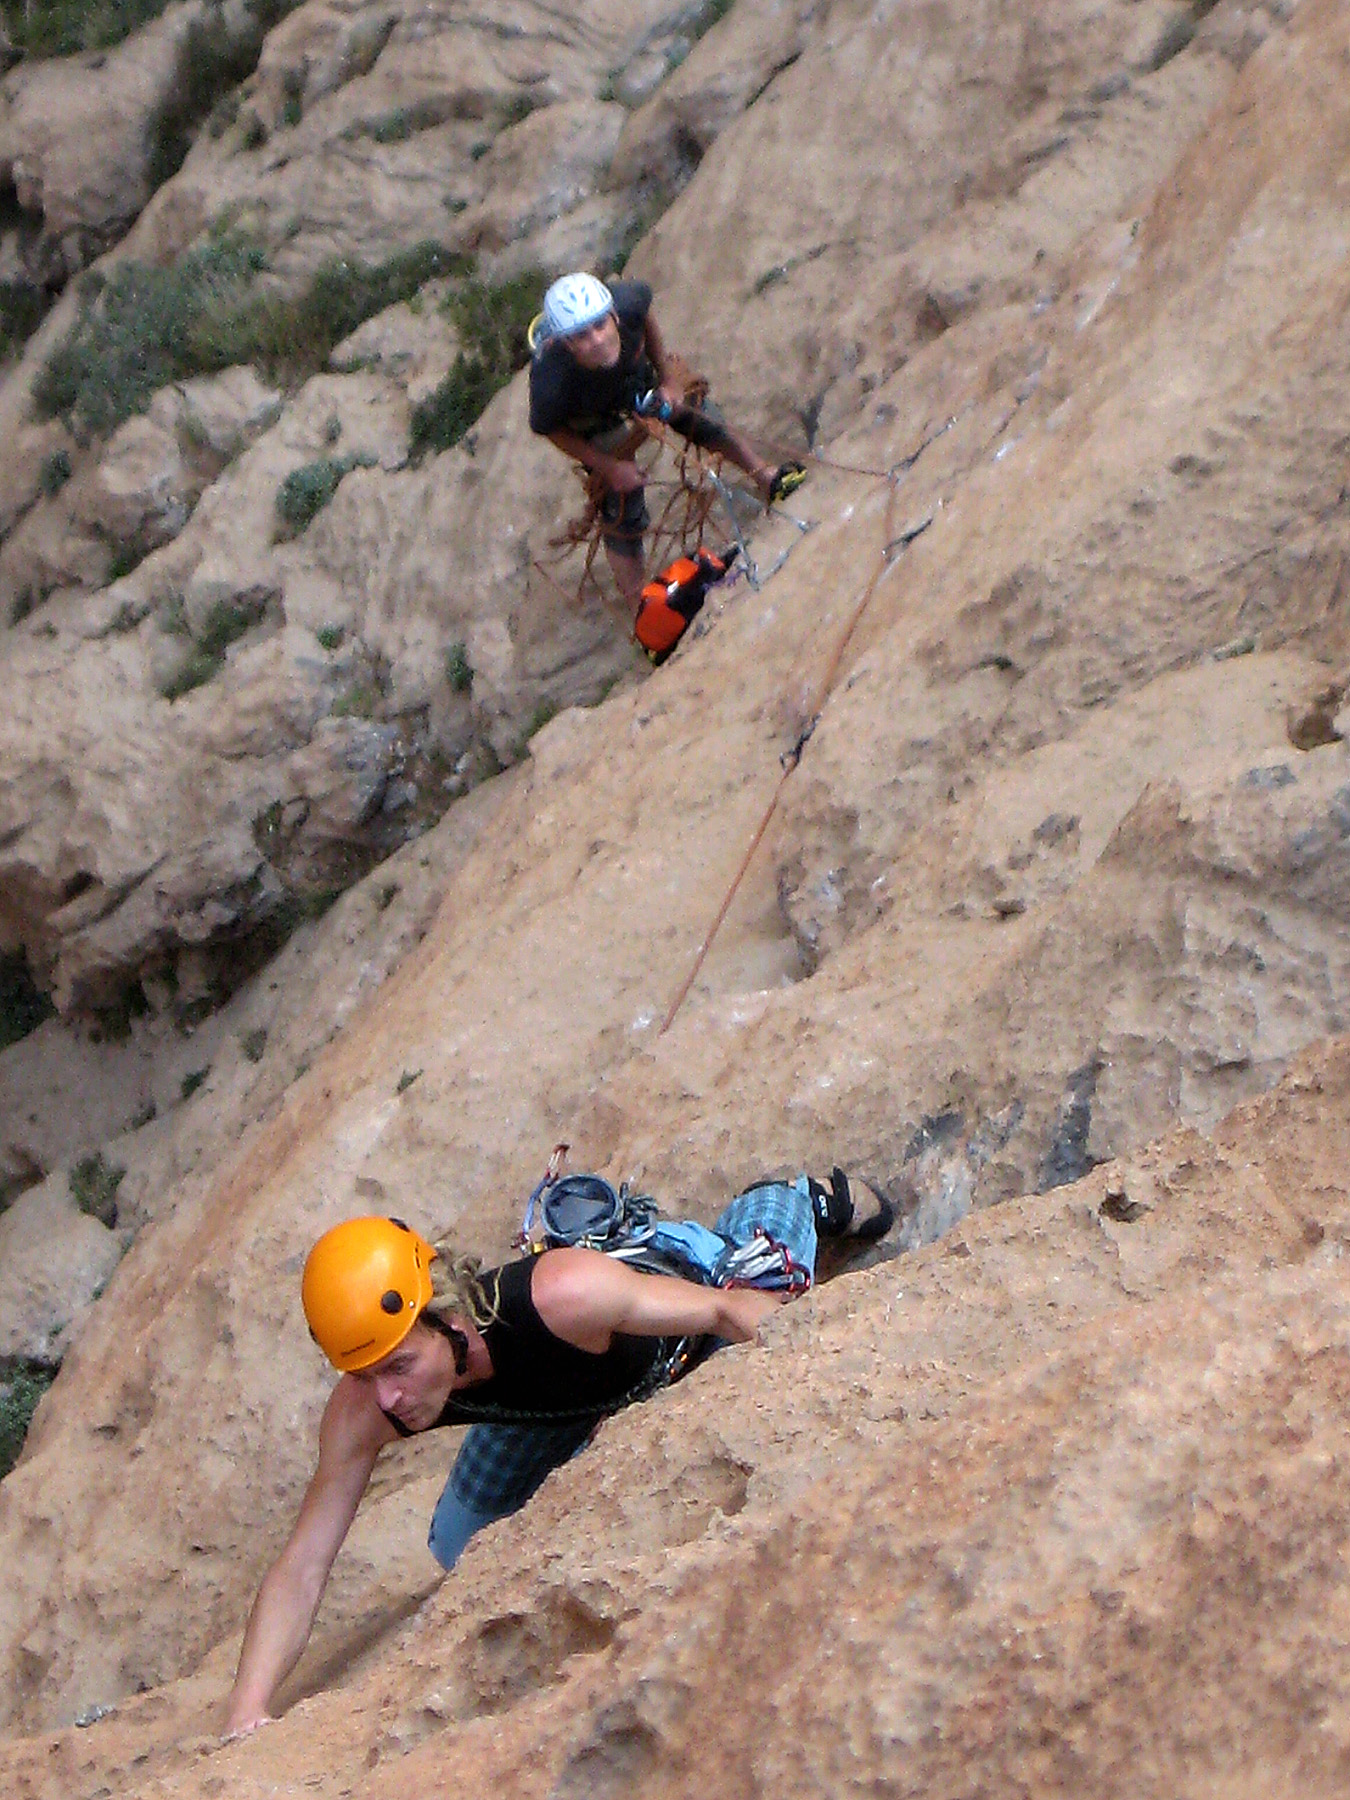 Francesco Fazzi, belayed by Silvano Gosso, on pitch four (7a+) of Capitan Tajin, after it had been cleaned.